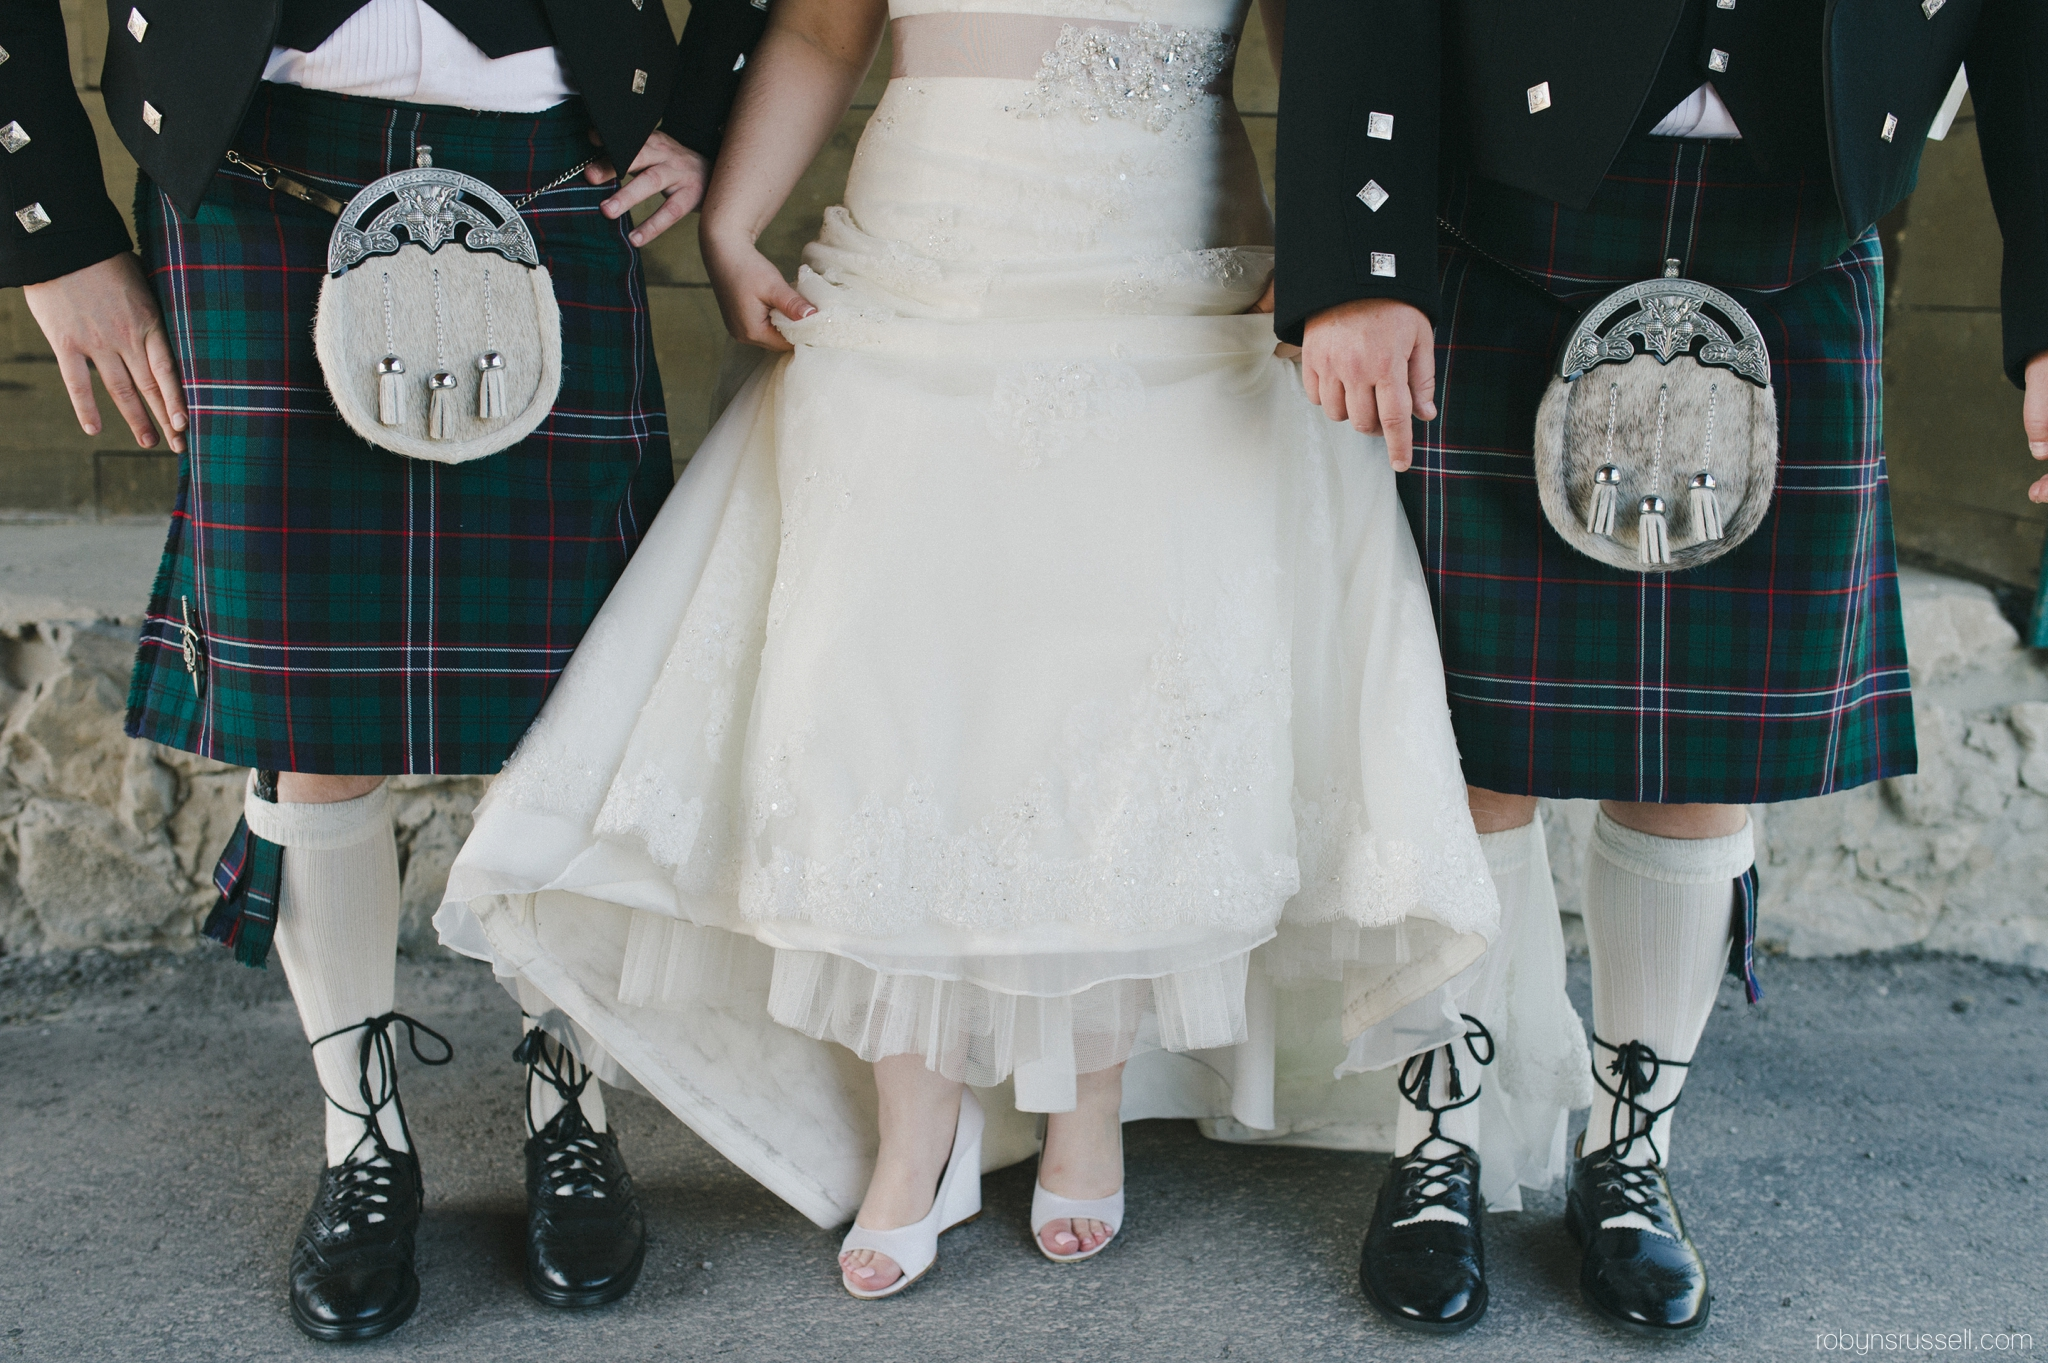 24-bride-with-brothers-scottish.jpg